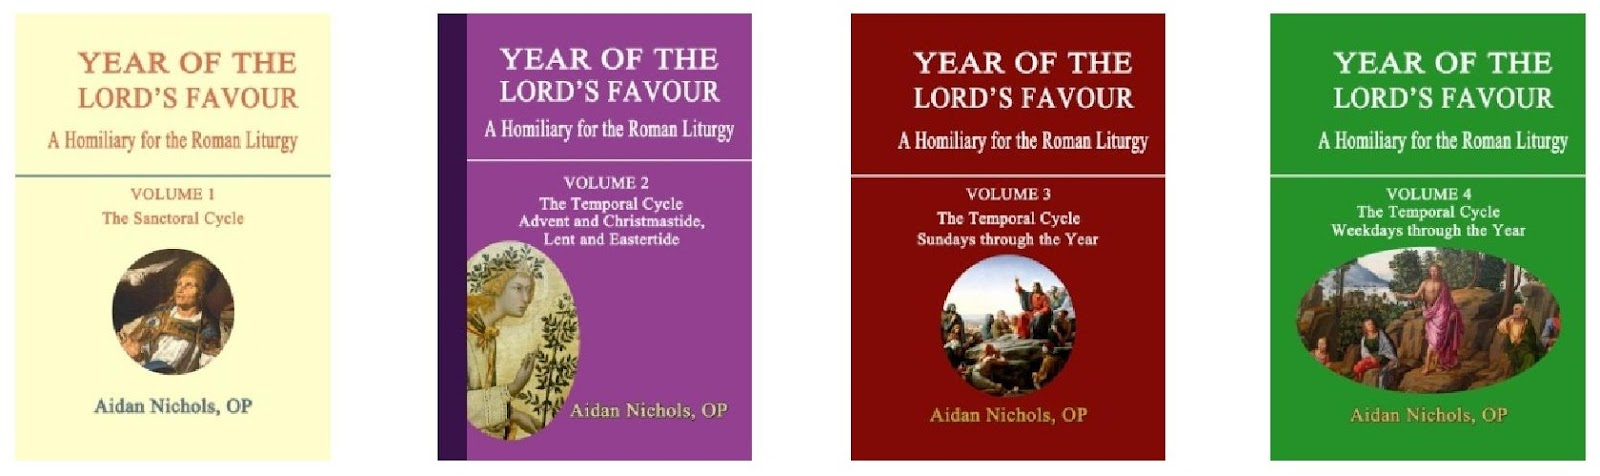 Aidan Nichols / Year of the Lord's Favour